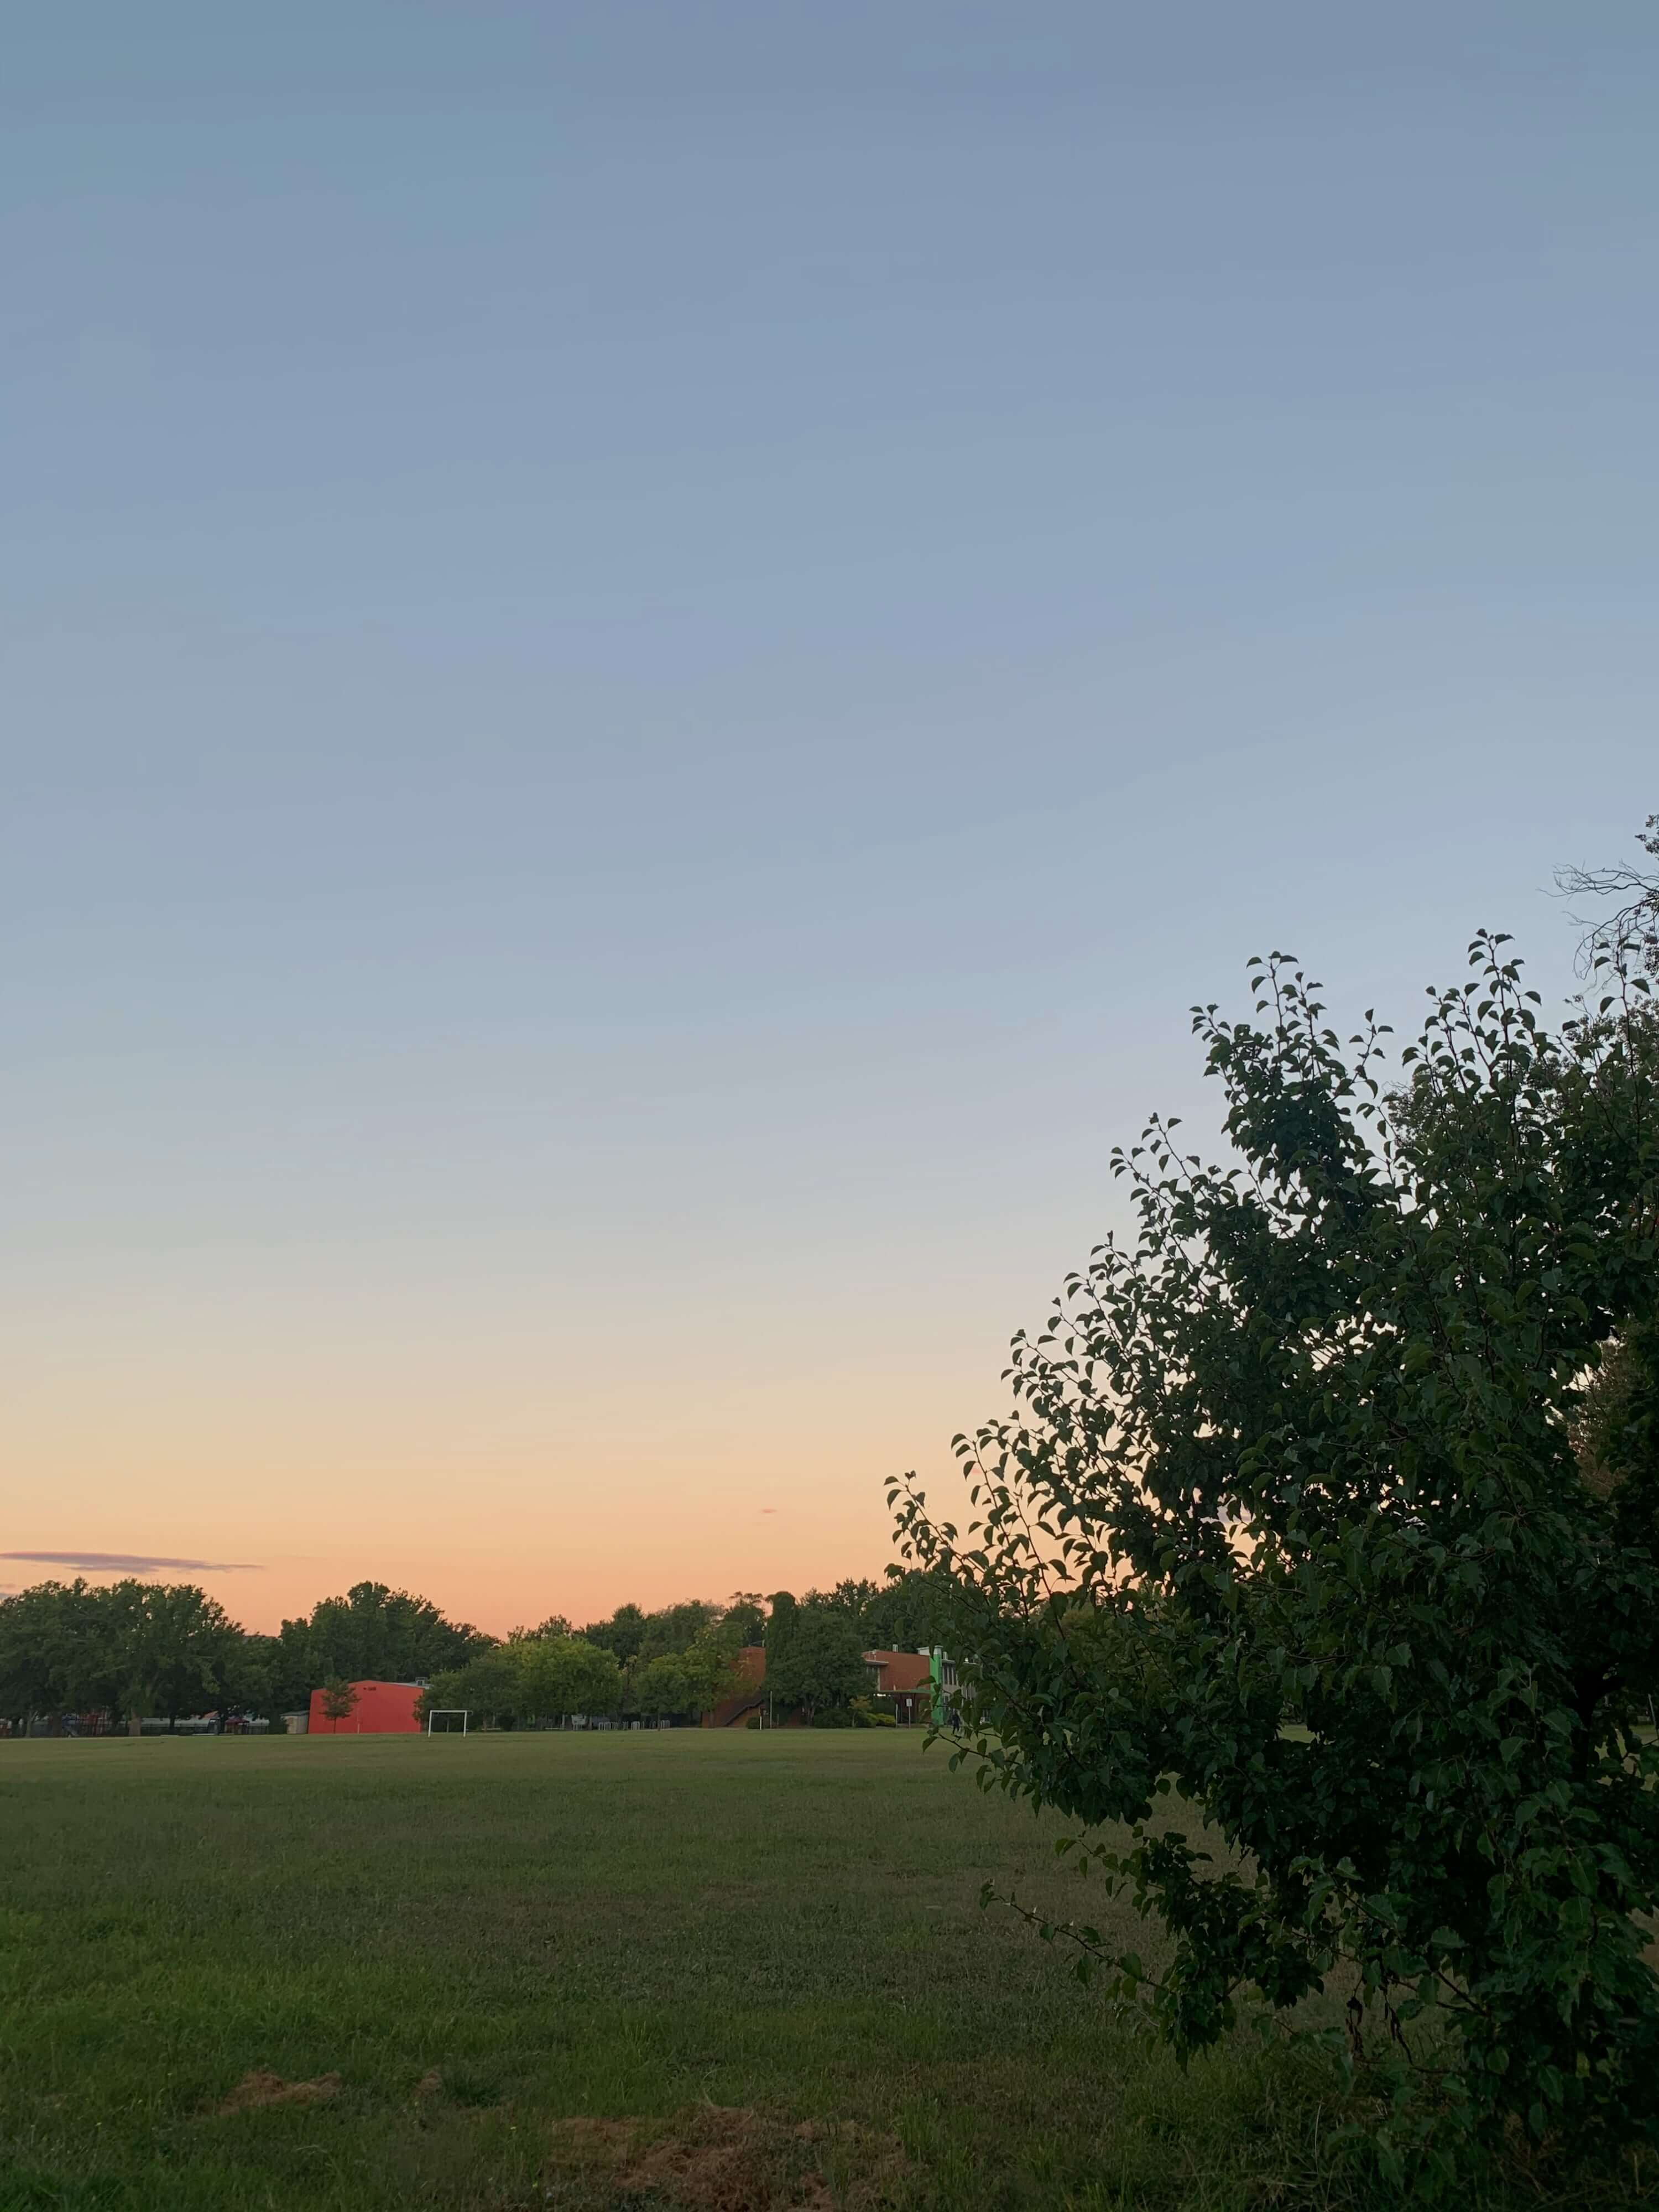 sunset on the horizon, as seem from across a play ground, Canberra